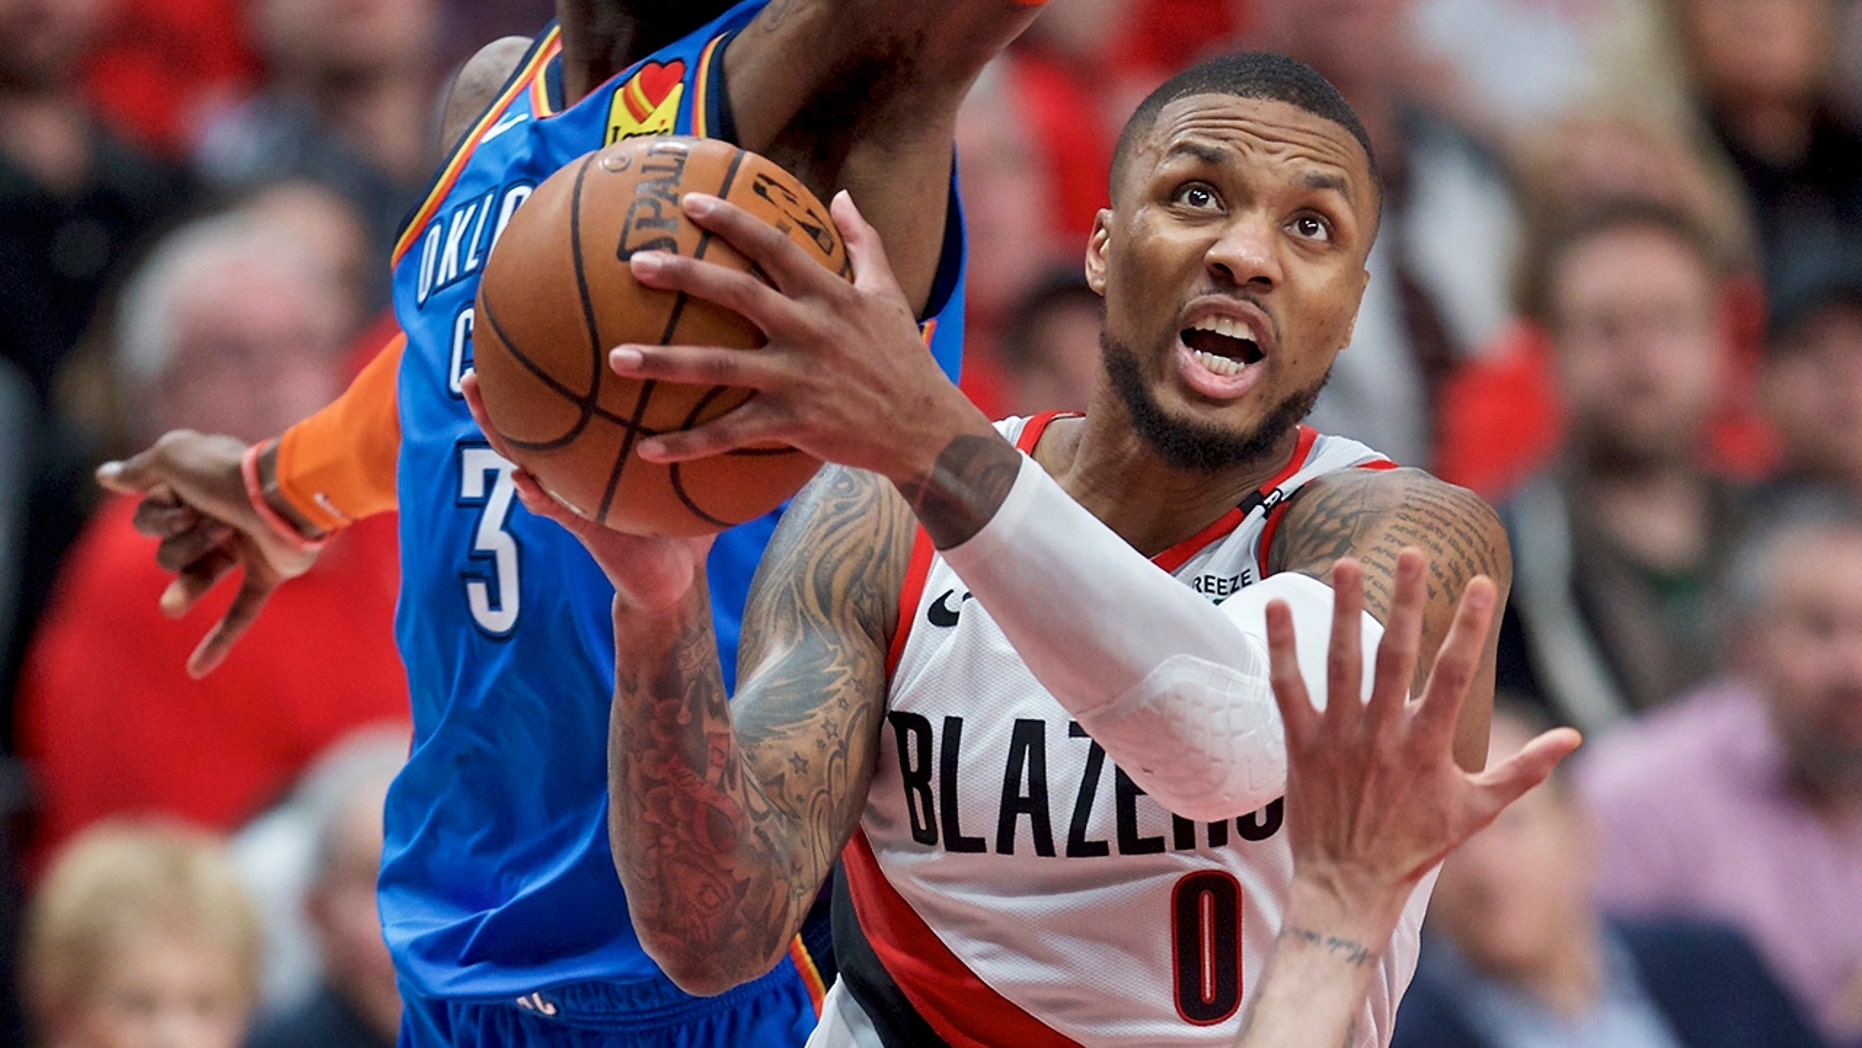 Westlake Legal Group NBA-Damian-Lillard3 Blazers go up 2-0 against the Thunder with 114-94 win fox-news/sports/nba/portland-trail-blazers fox-news/sports/nba/oklahoma-city-thunder fox-news/sports/nba-playoffs fox-news/sports/nba fnc/sports fnc f1be5640-5516-59c9-91e9-e142184f8cbb Associated Press article